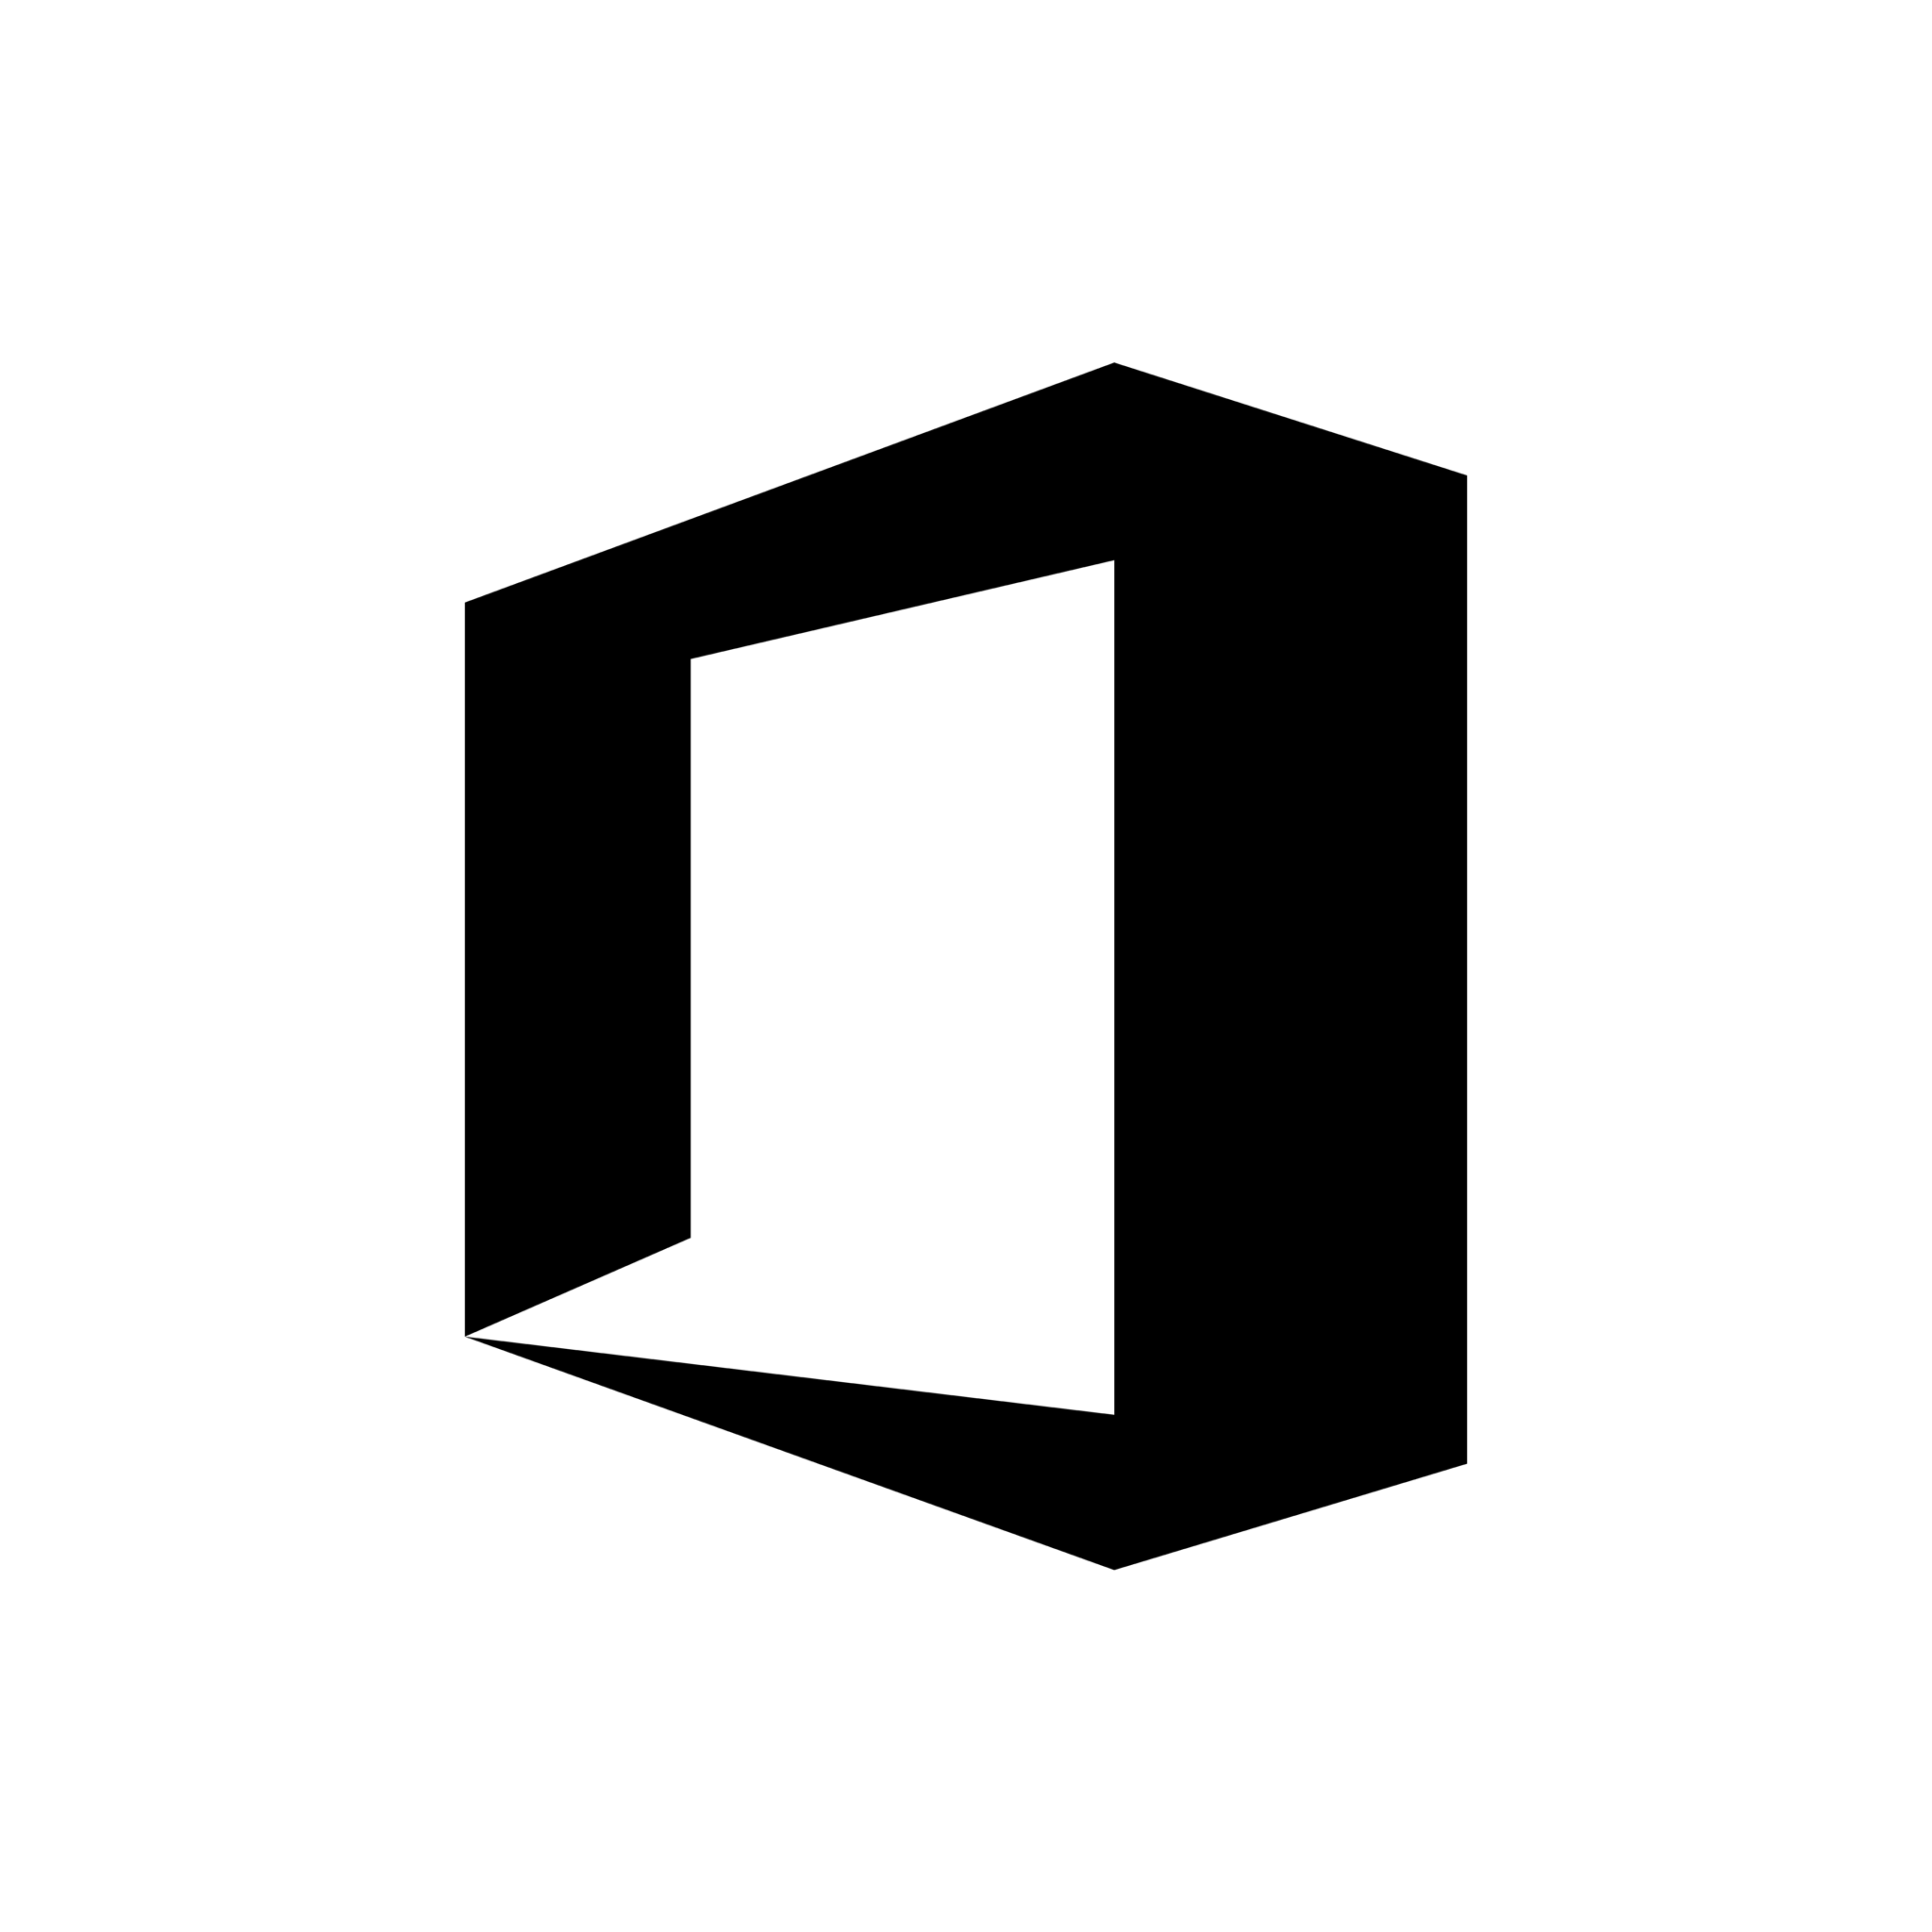 Office Black Icon Png